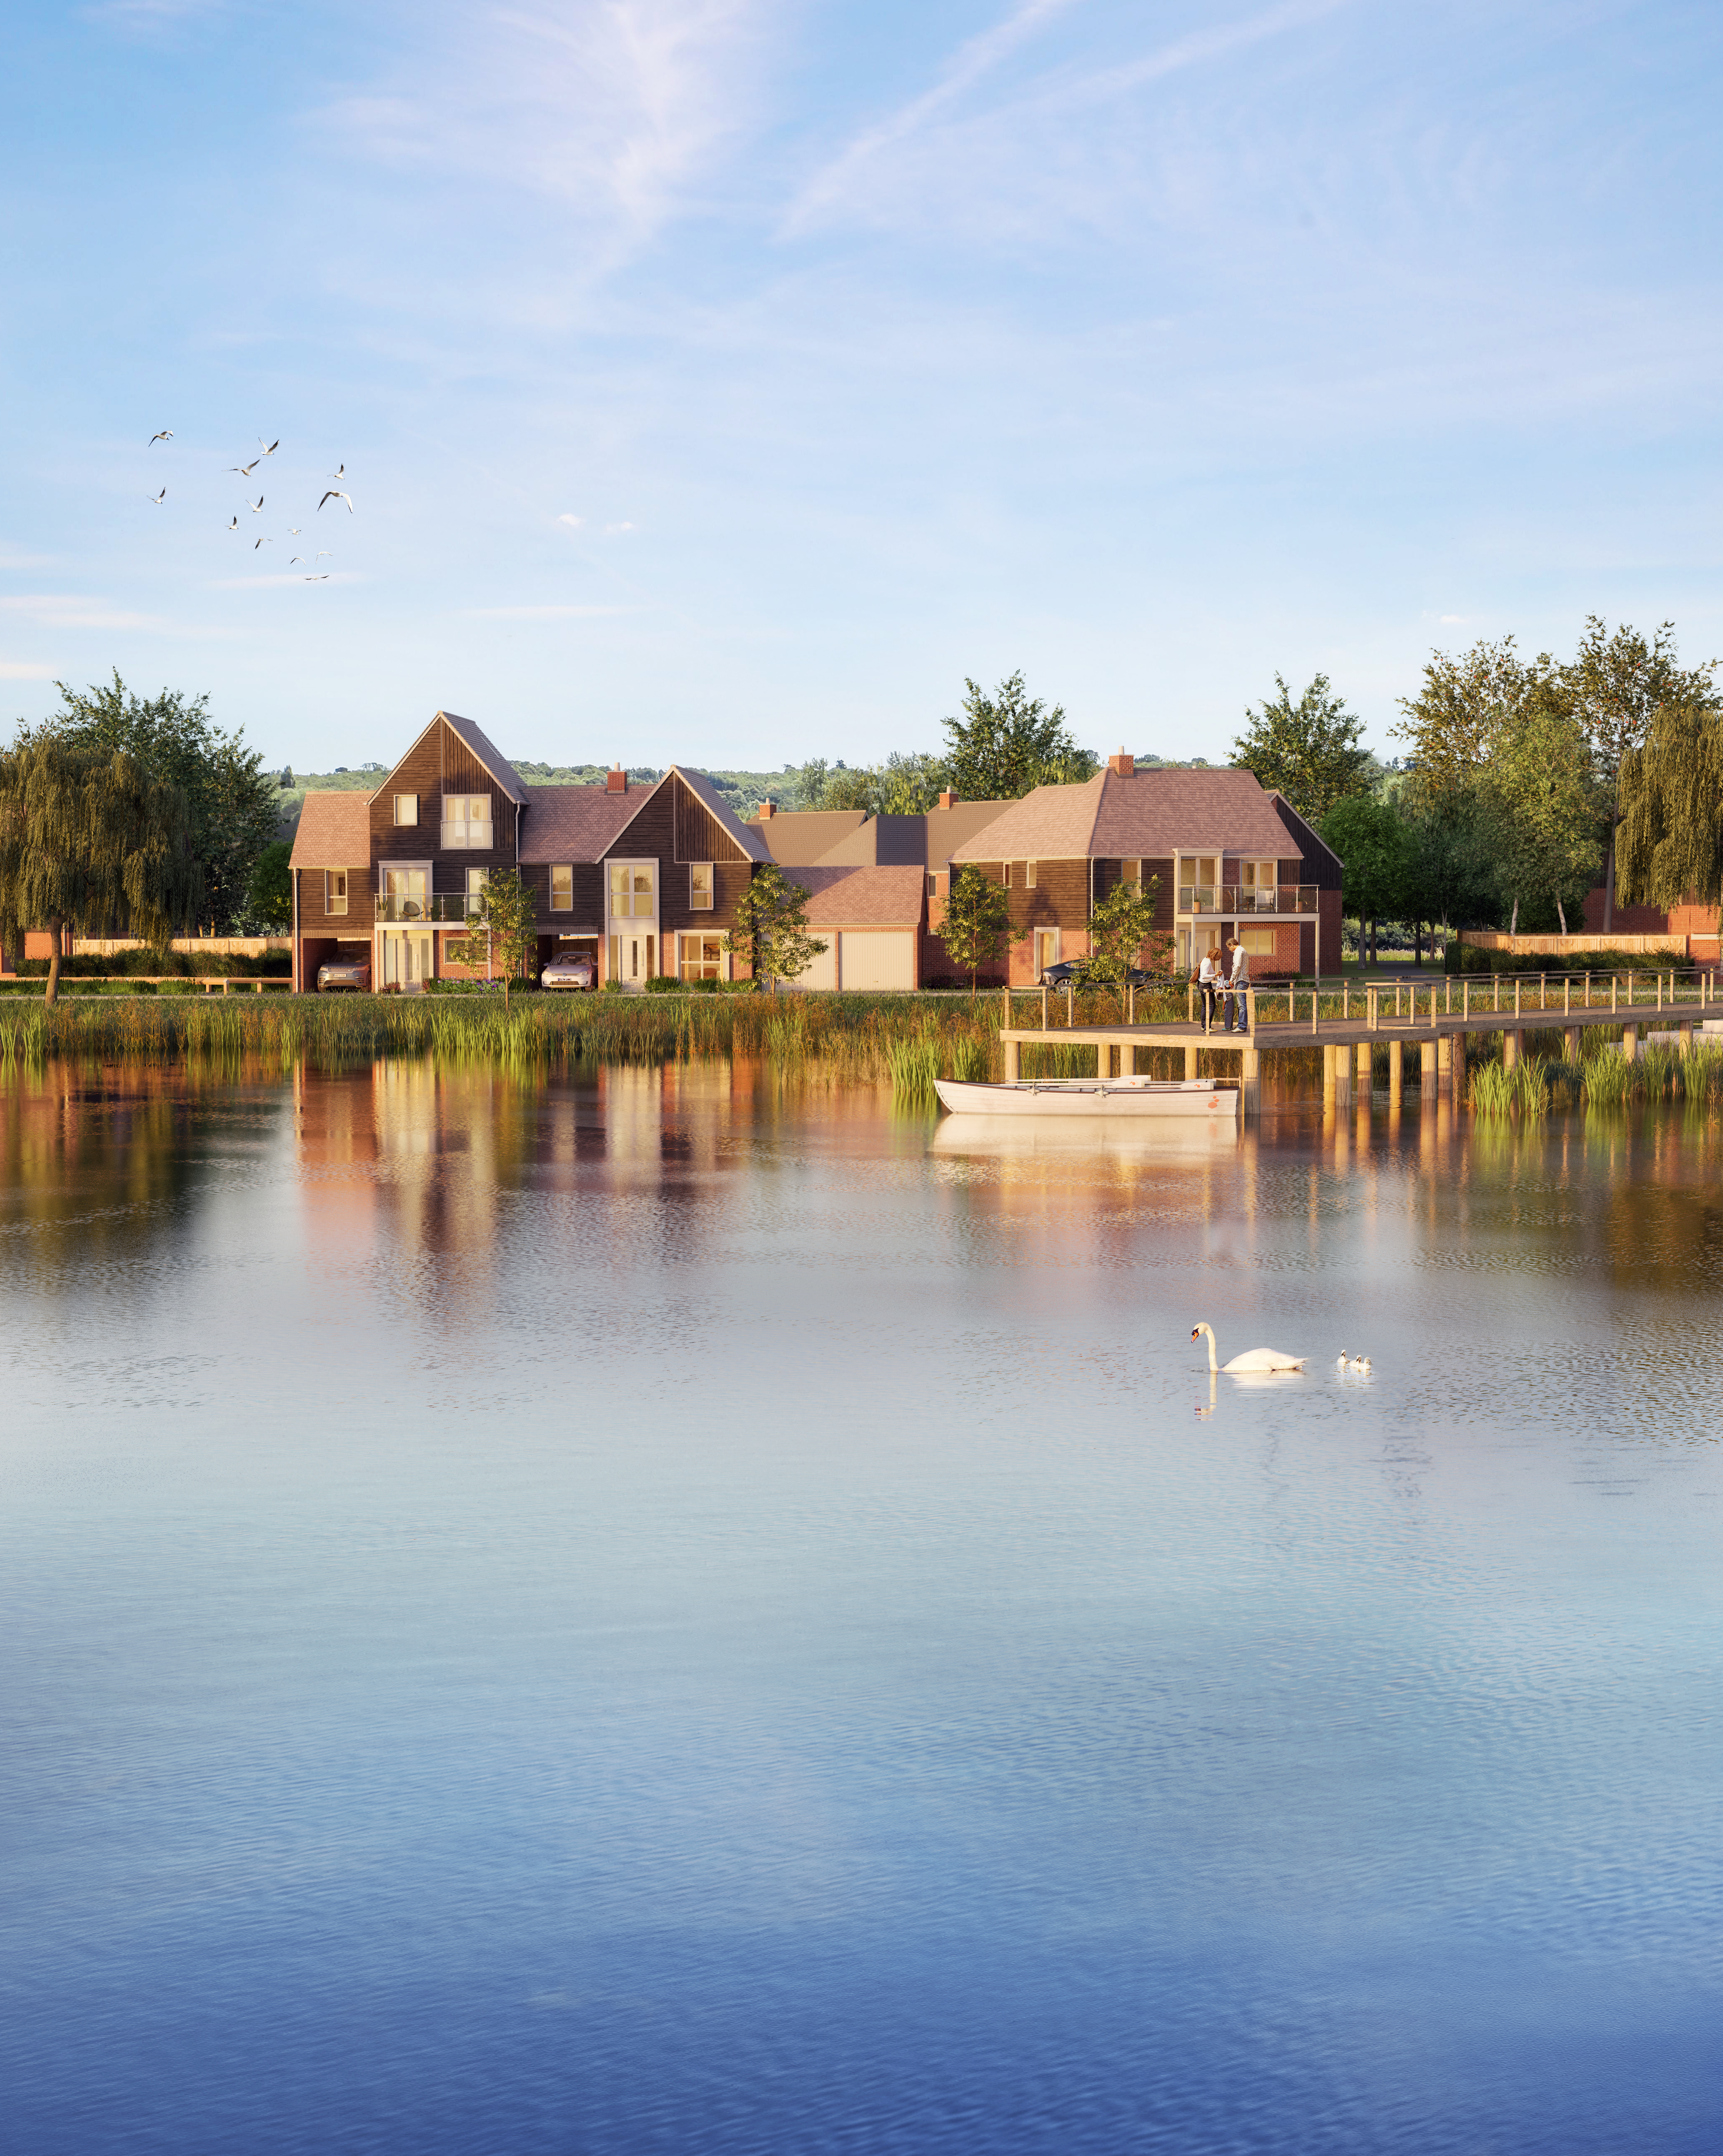 s01_Conningbrook Lake_Exterior_crop